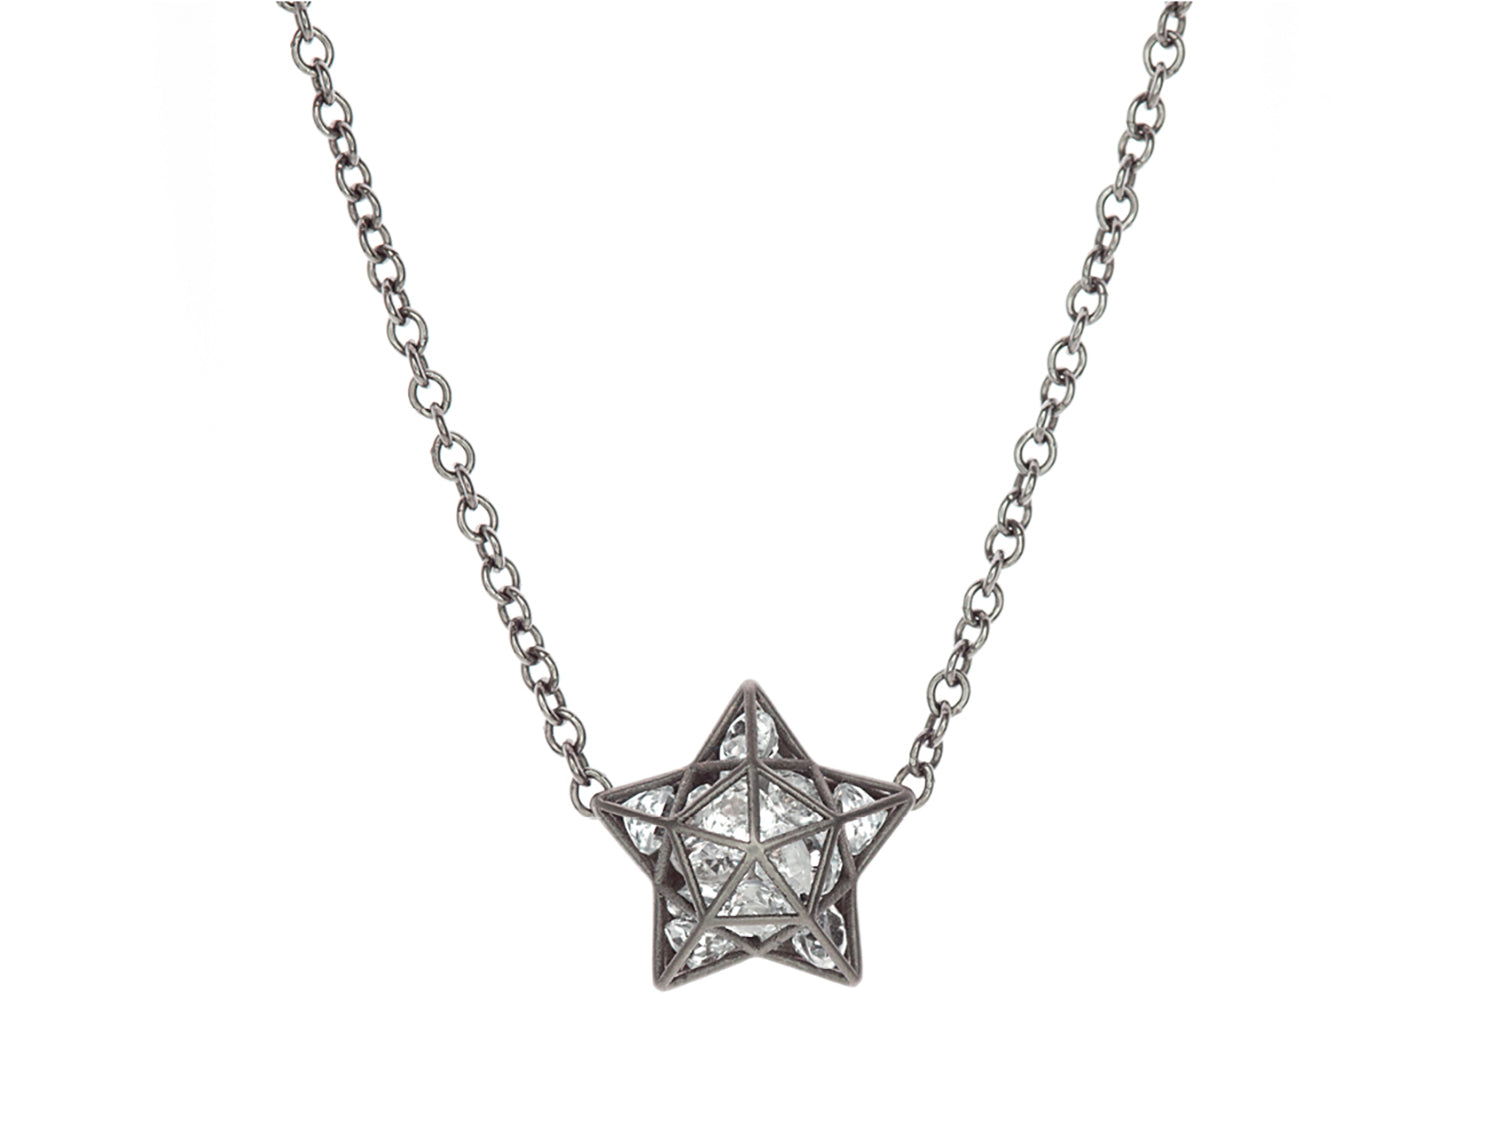 Floating White Sapphire Astral Pendant Necklace